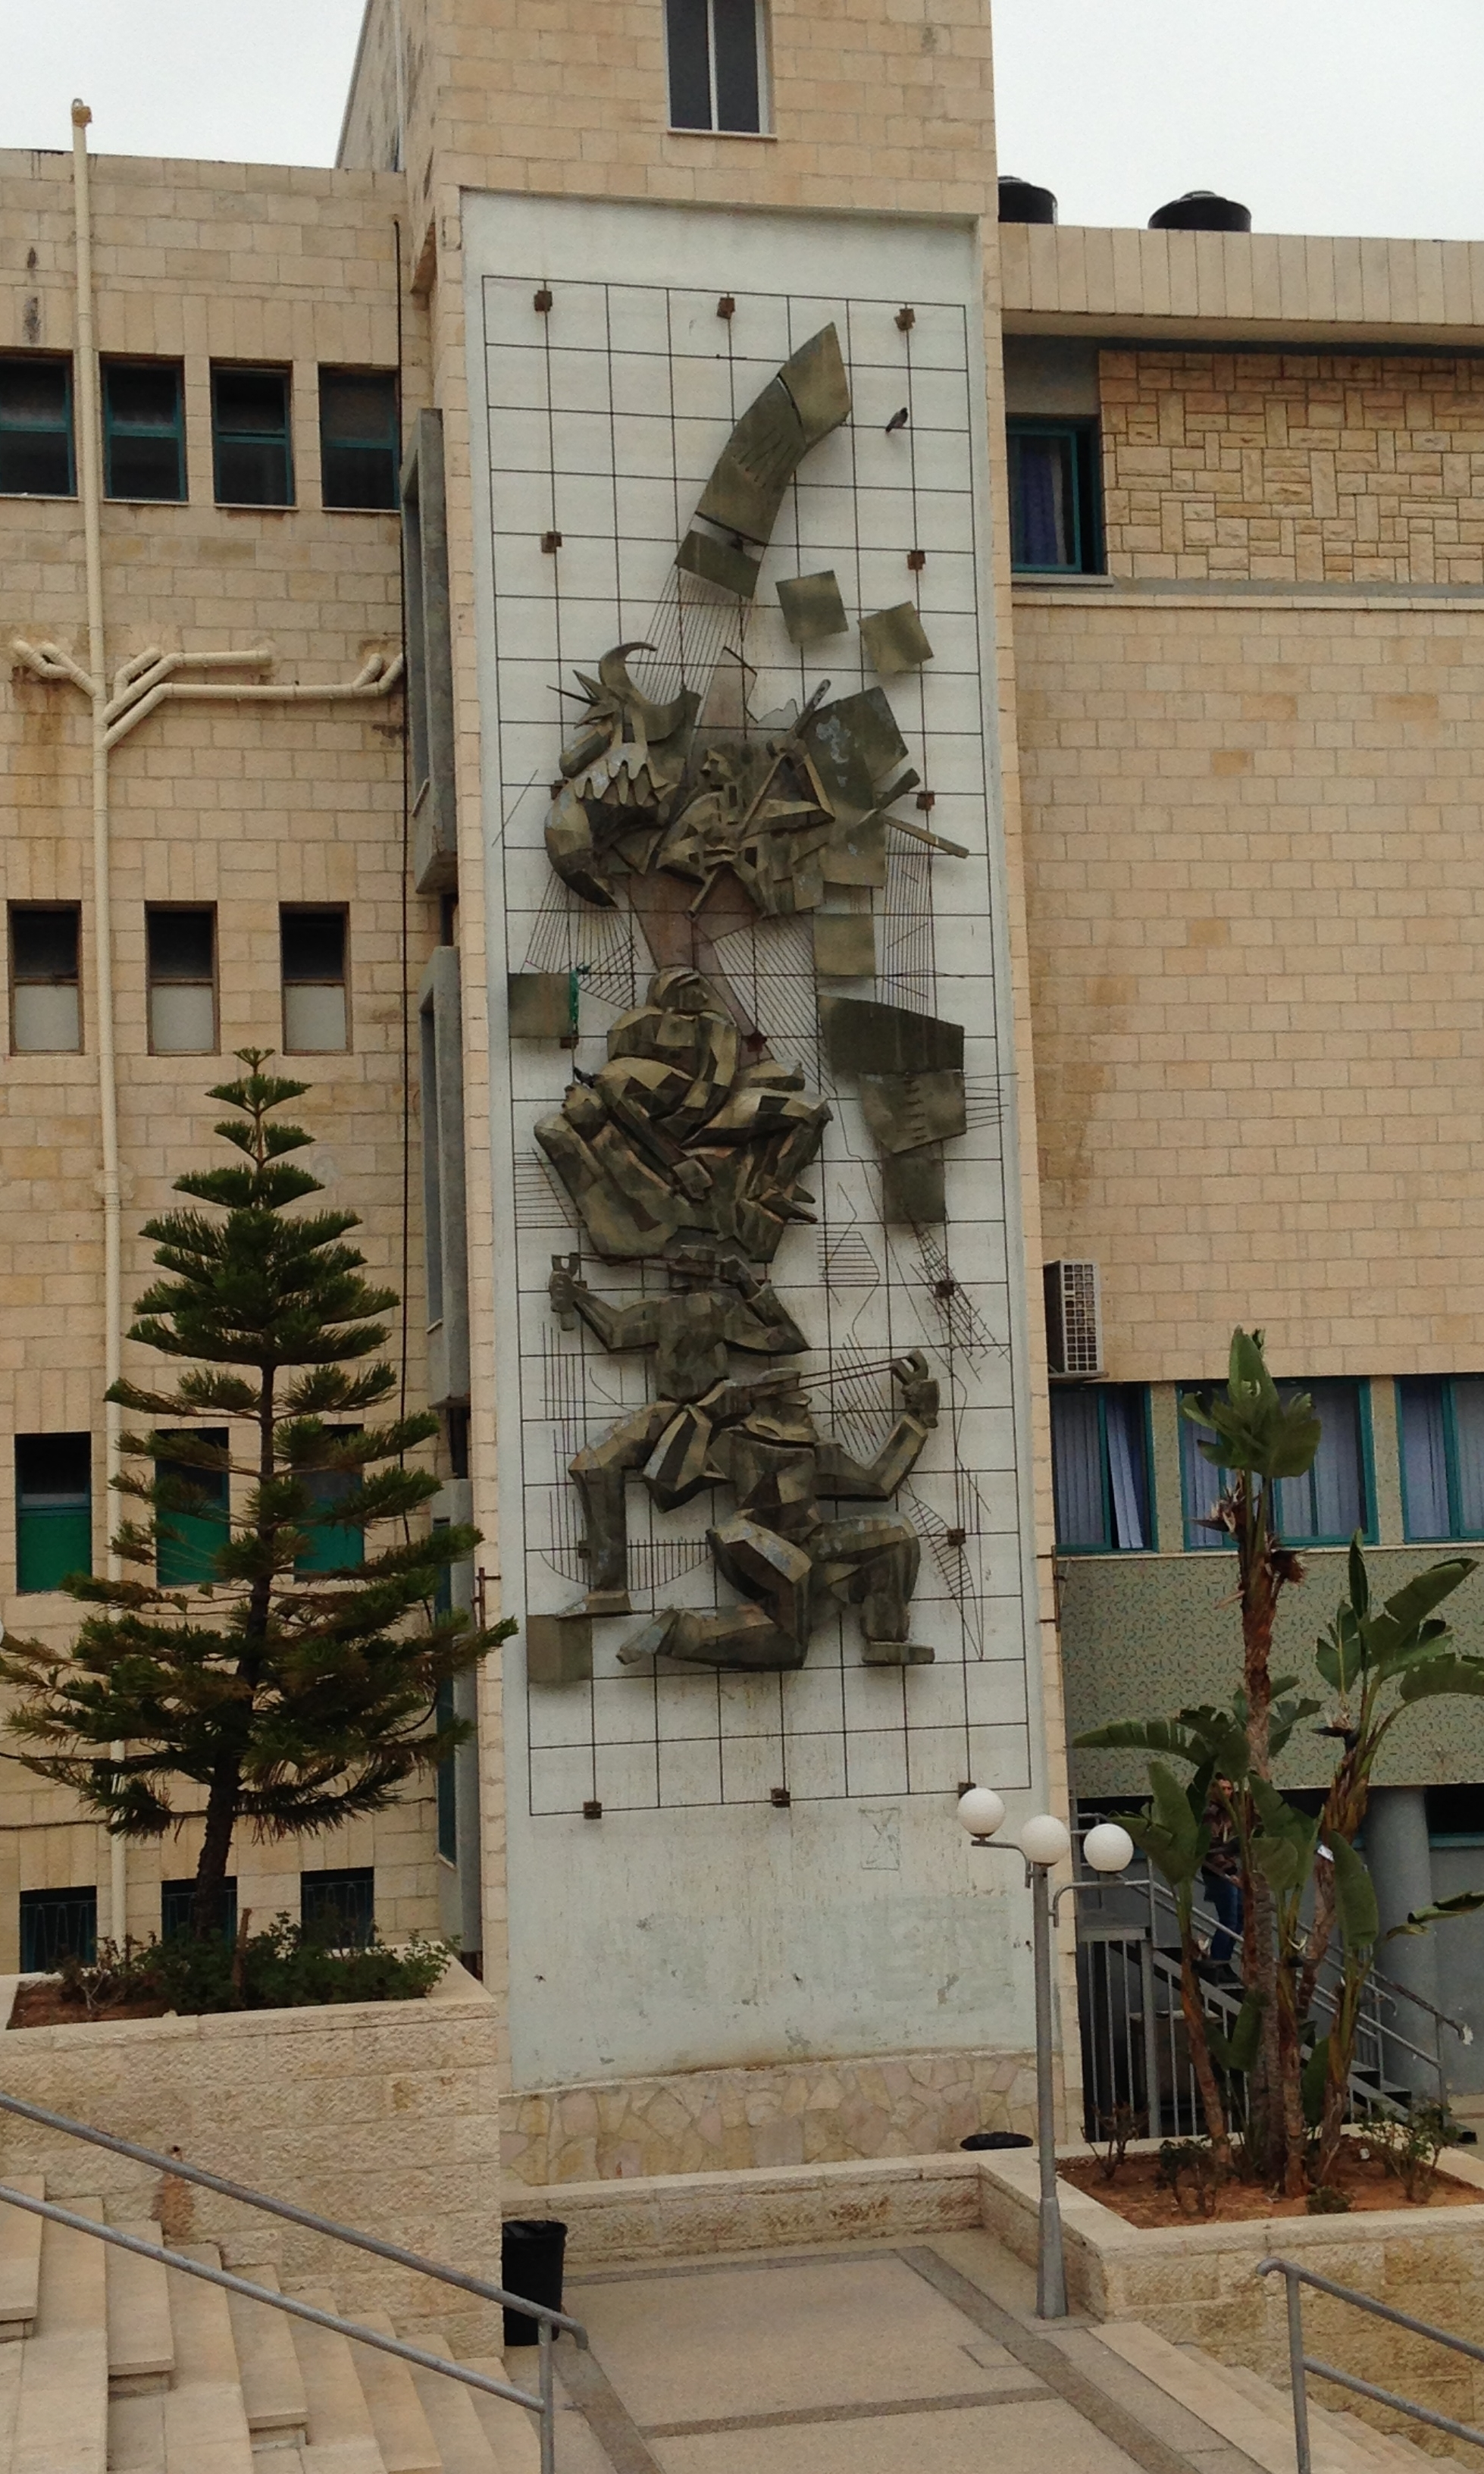 Sculpture commemorating the first Palestinian intifadah. An-Najah University, Nablus, Palestine. Photo taken by author.